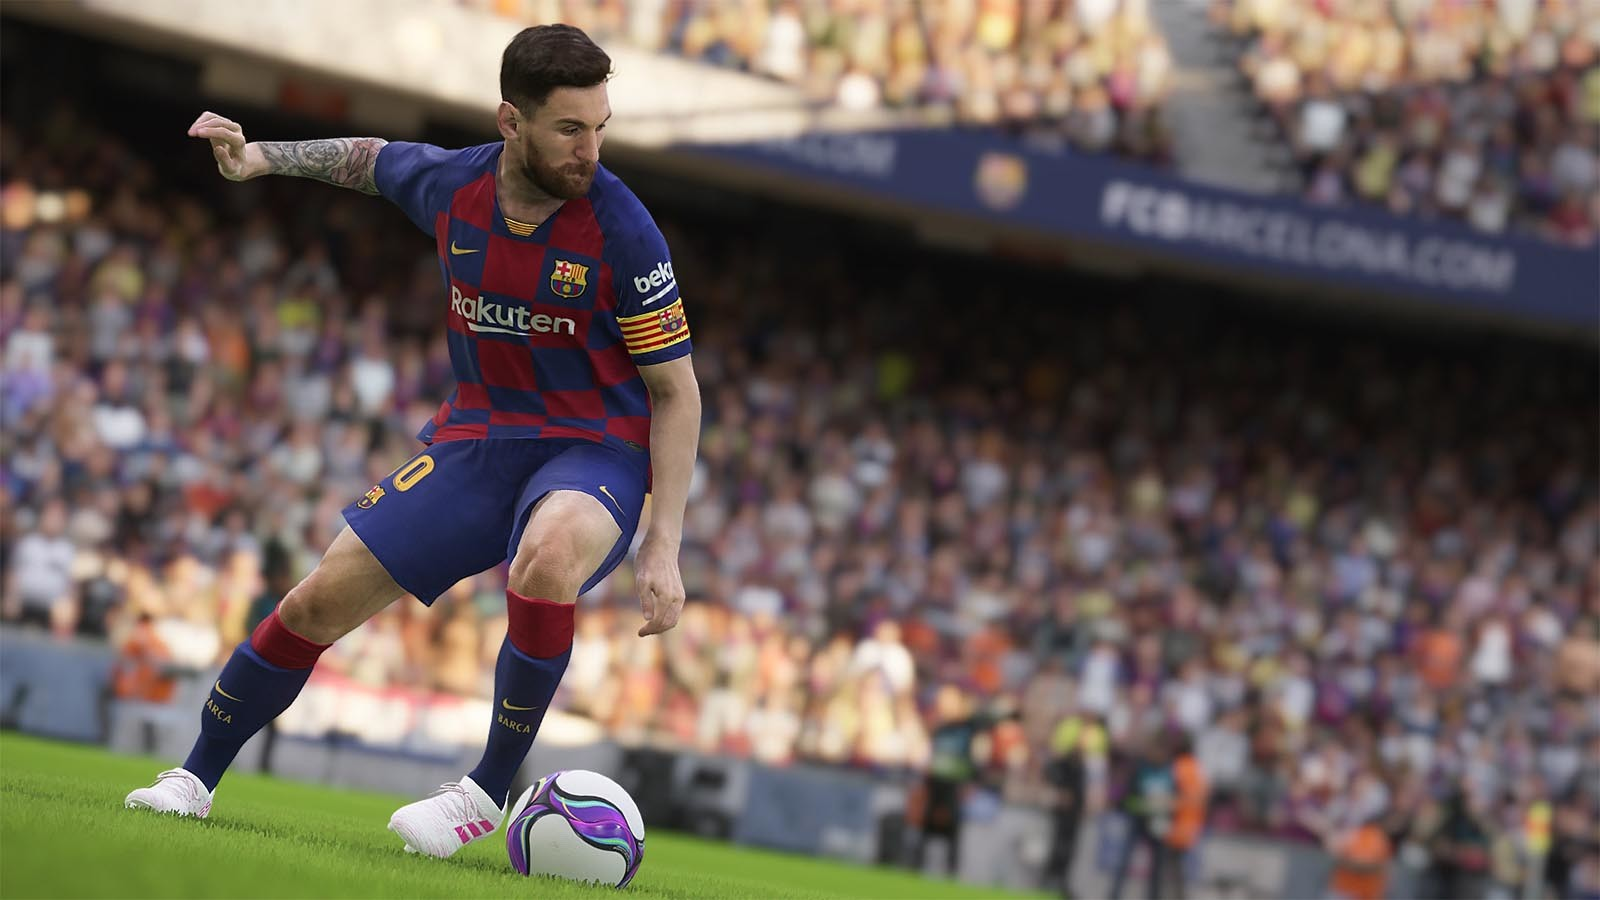 eFootball PES 2020 [Steam CD Key] for PC - Buy now